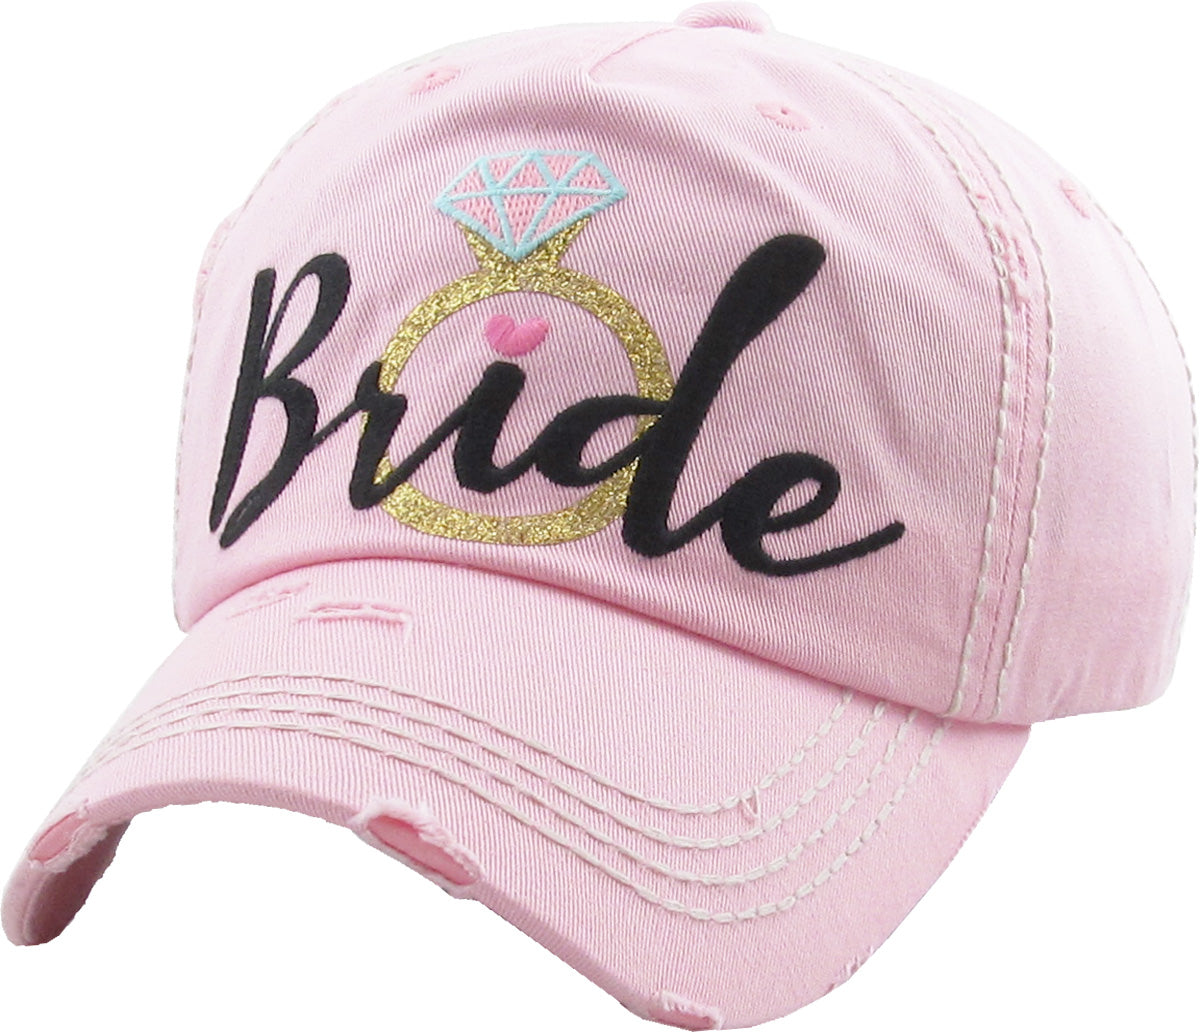 Distressed Bridal Baseball Cap- Bride w/Ring - Light Pink w/BLK